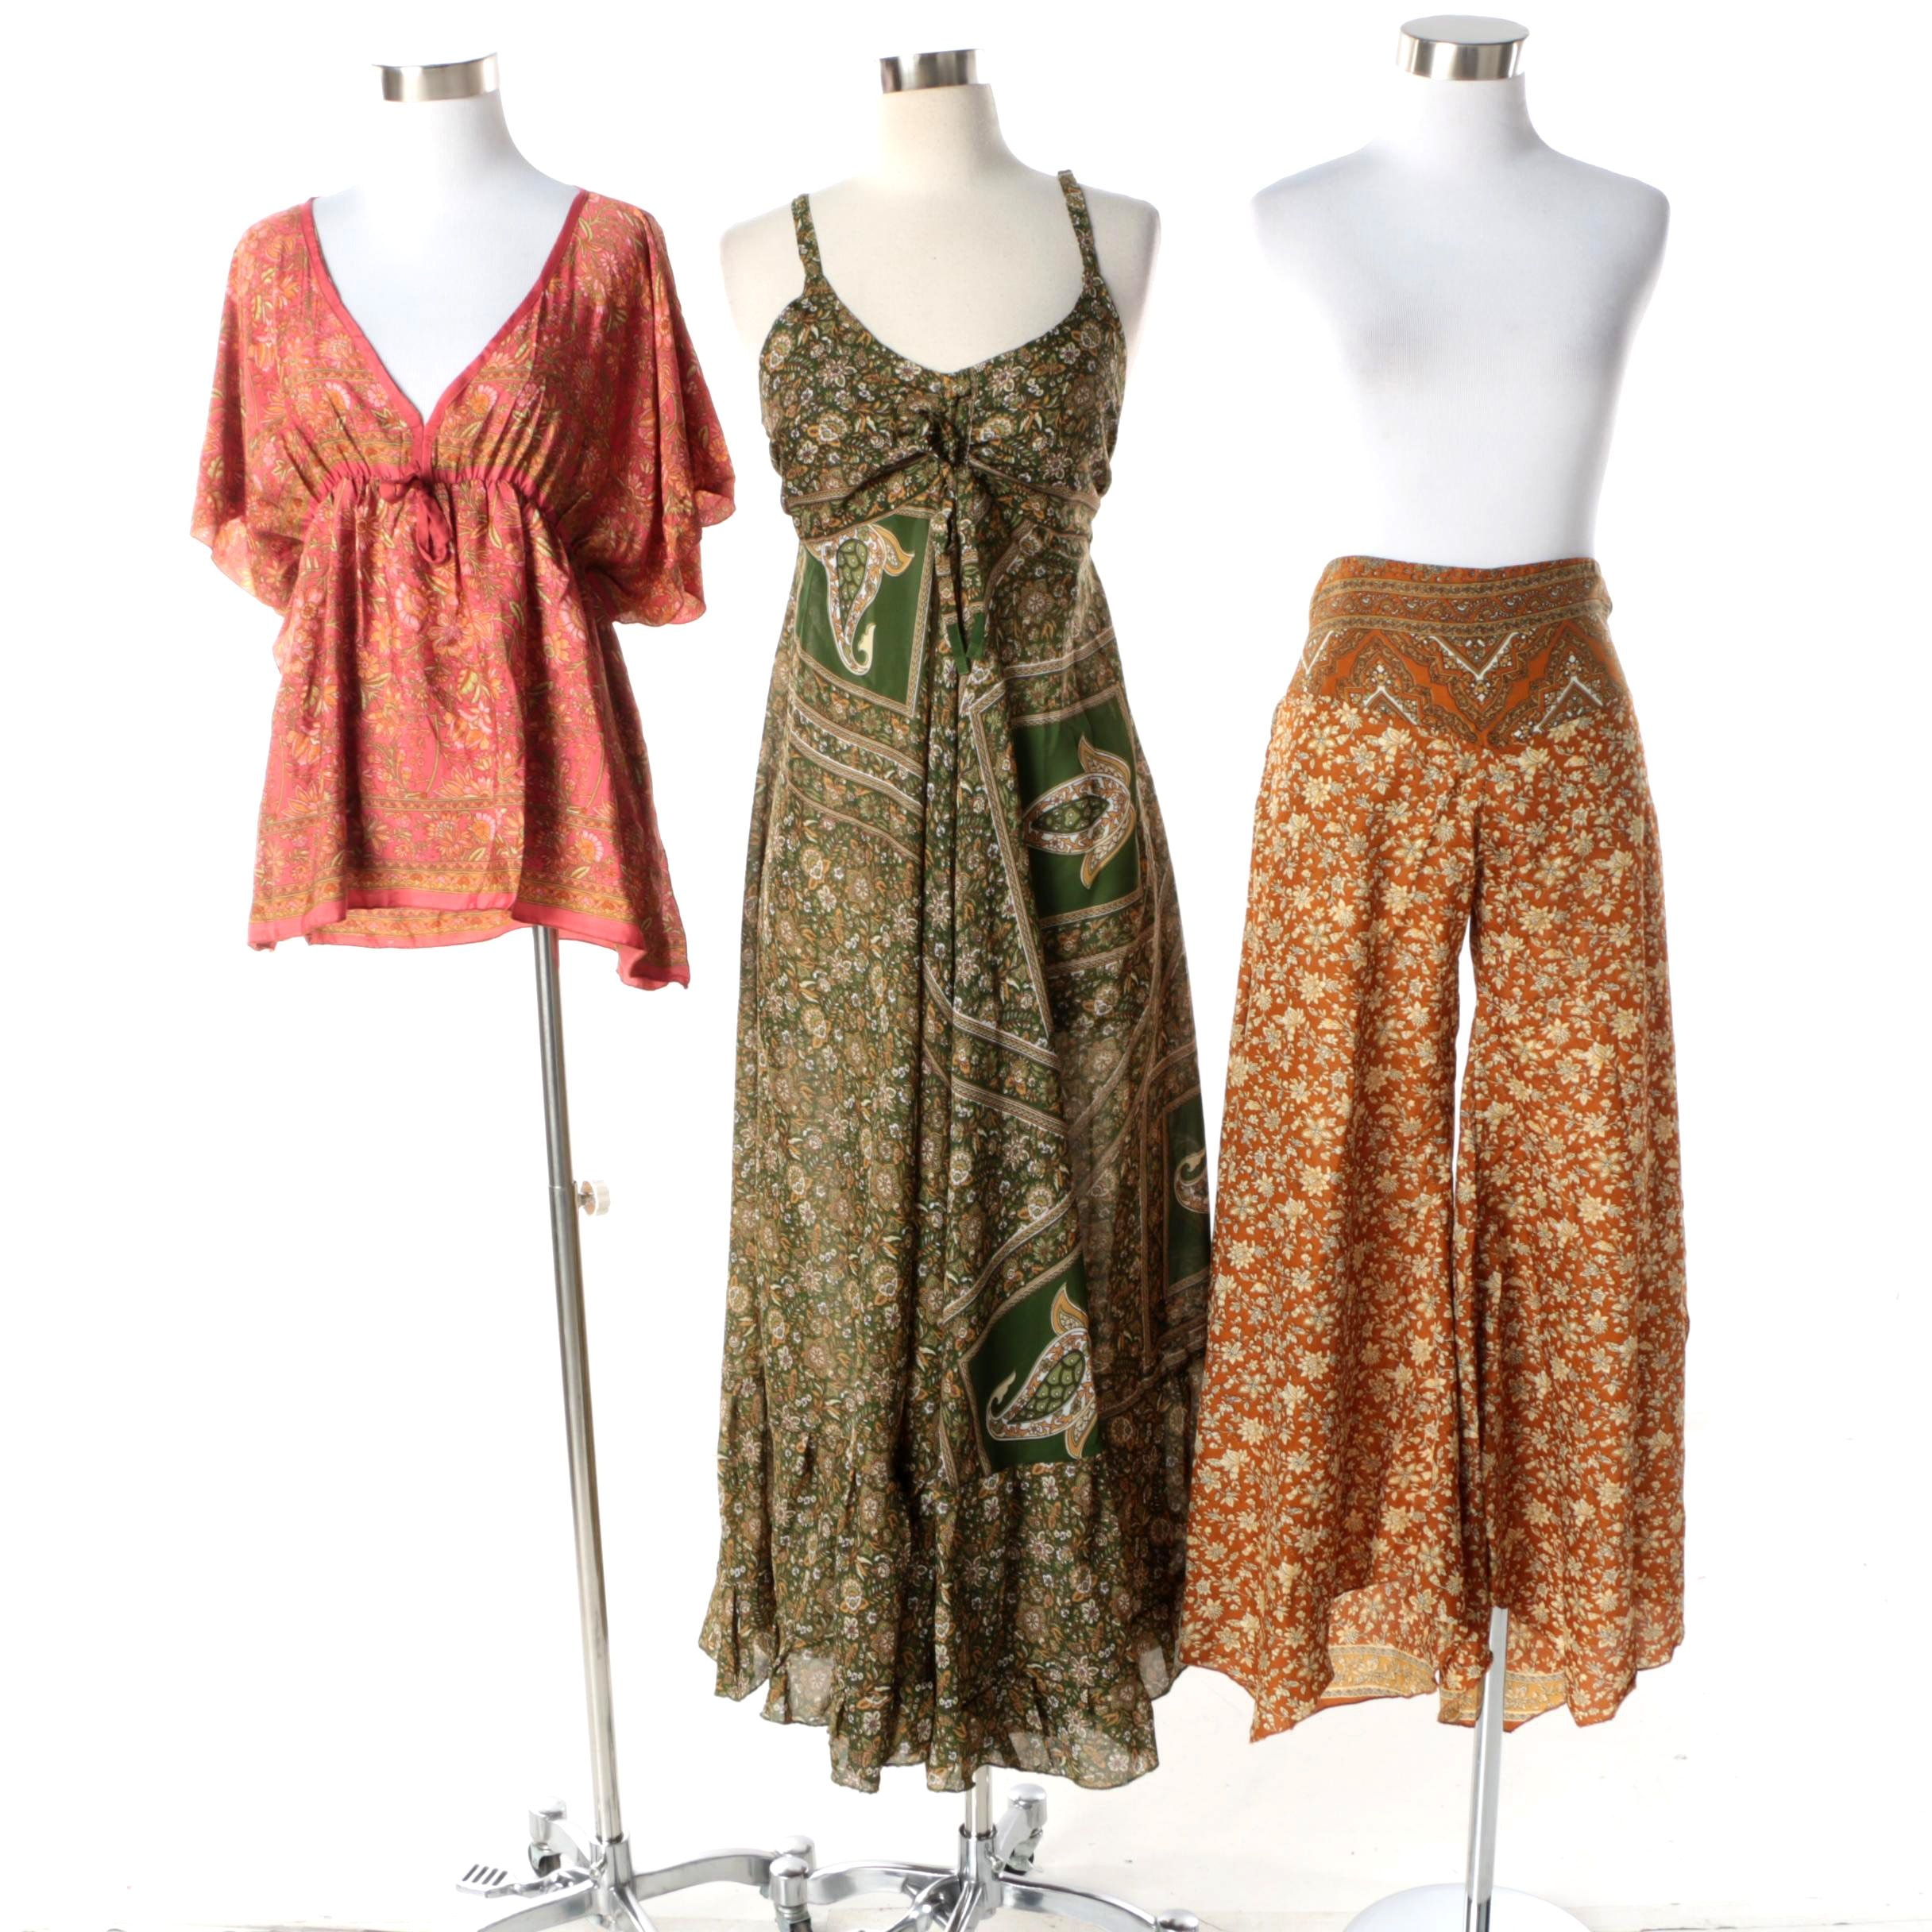 Aller Simplement Floral Separates Made From Upcycled Vintage Saris